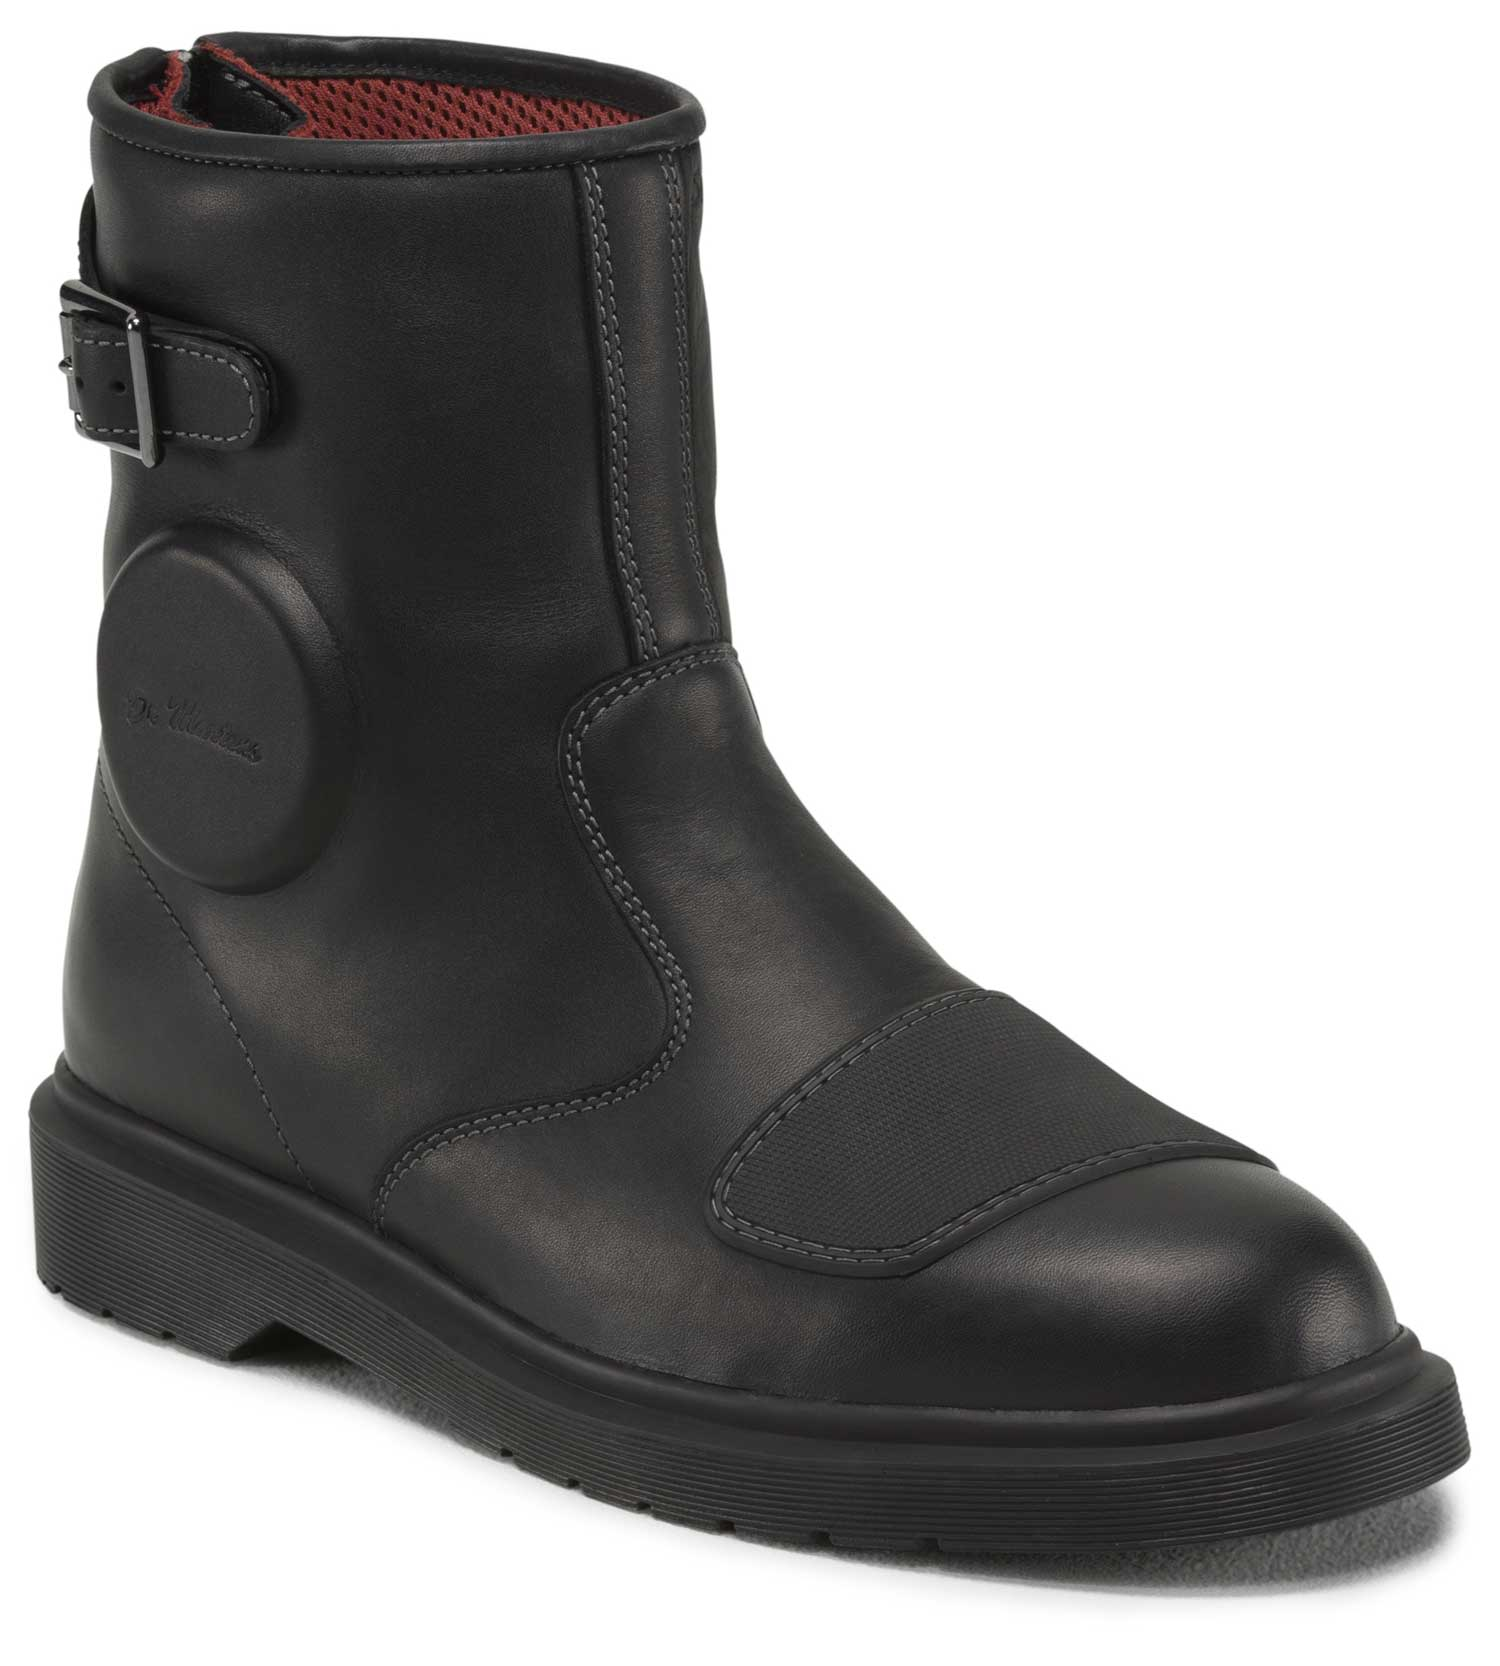 The Dr Marten Faris motorcycle boot